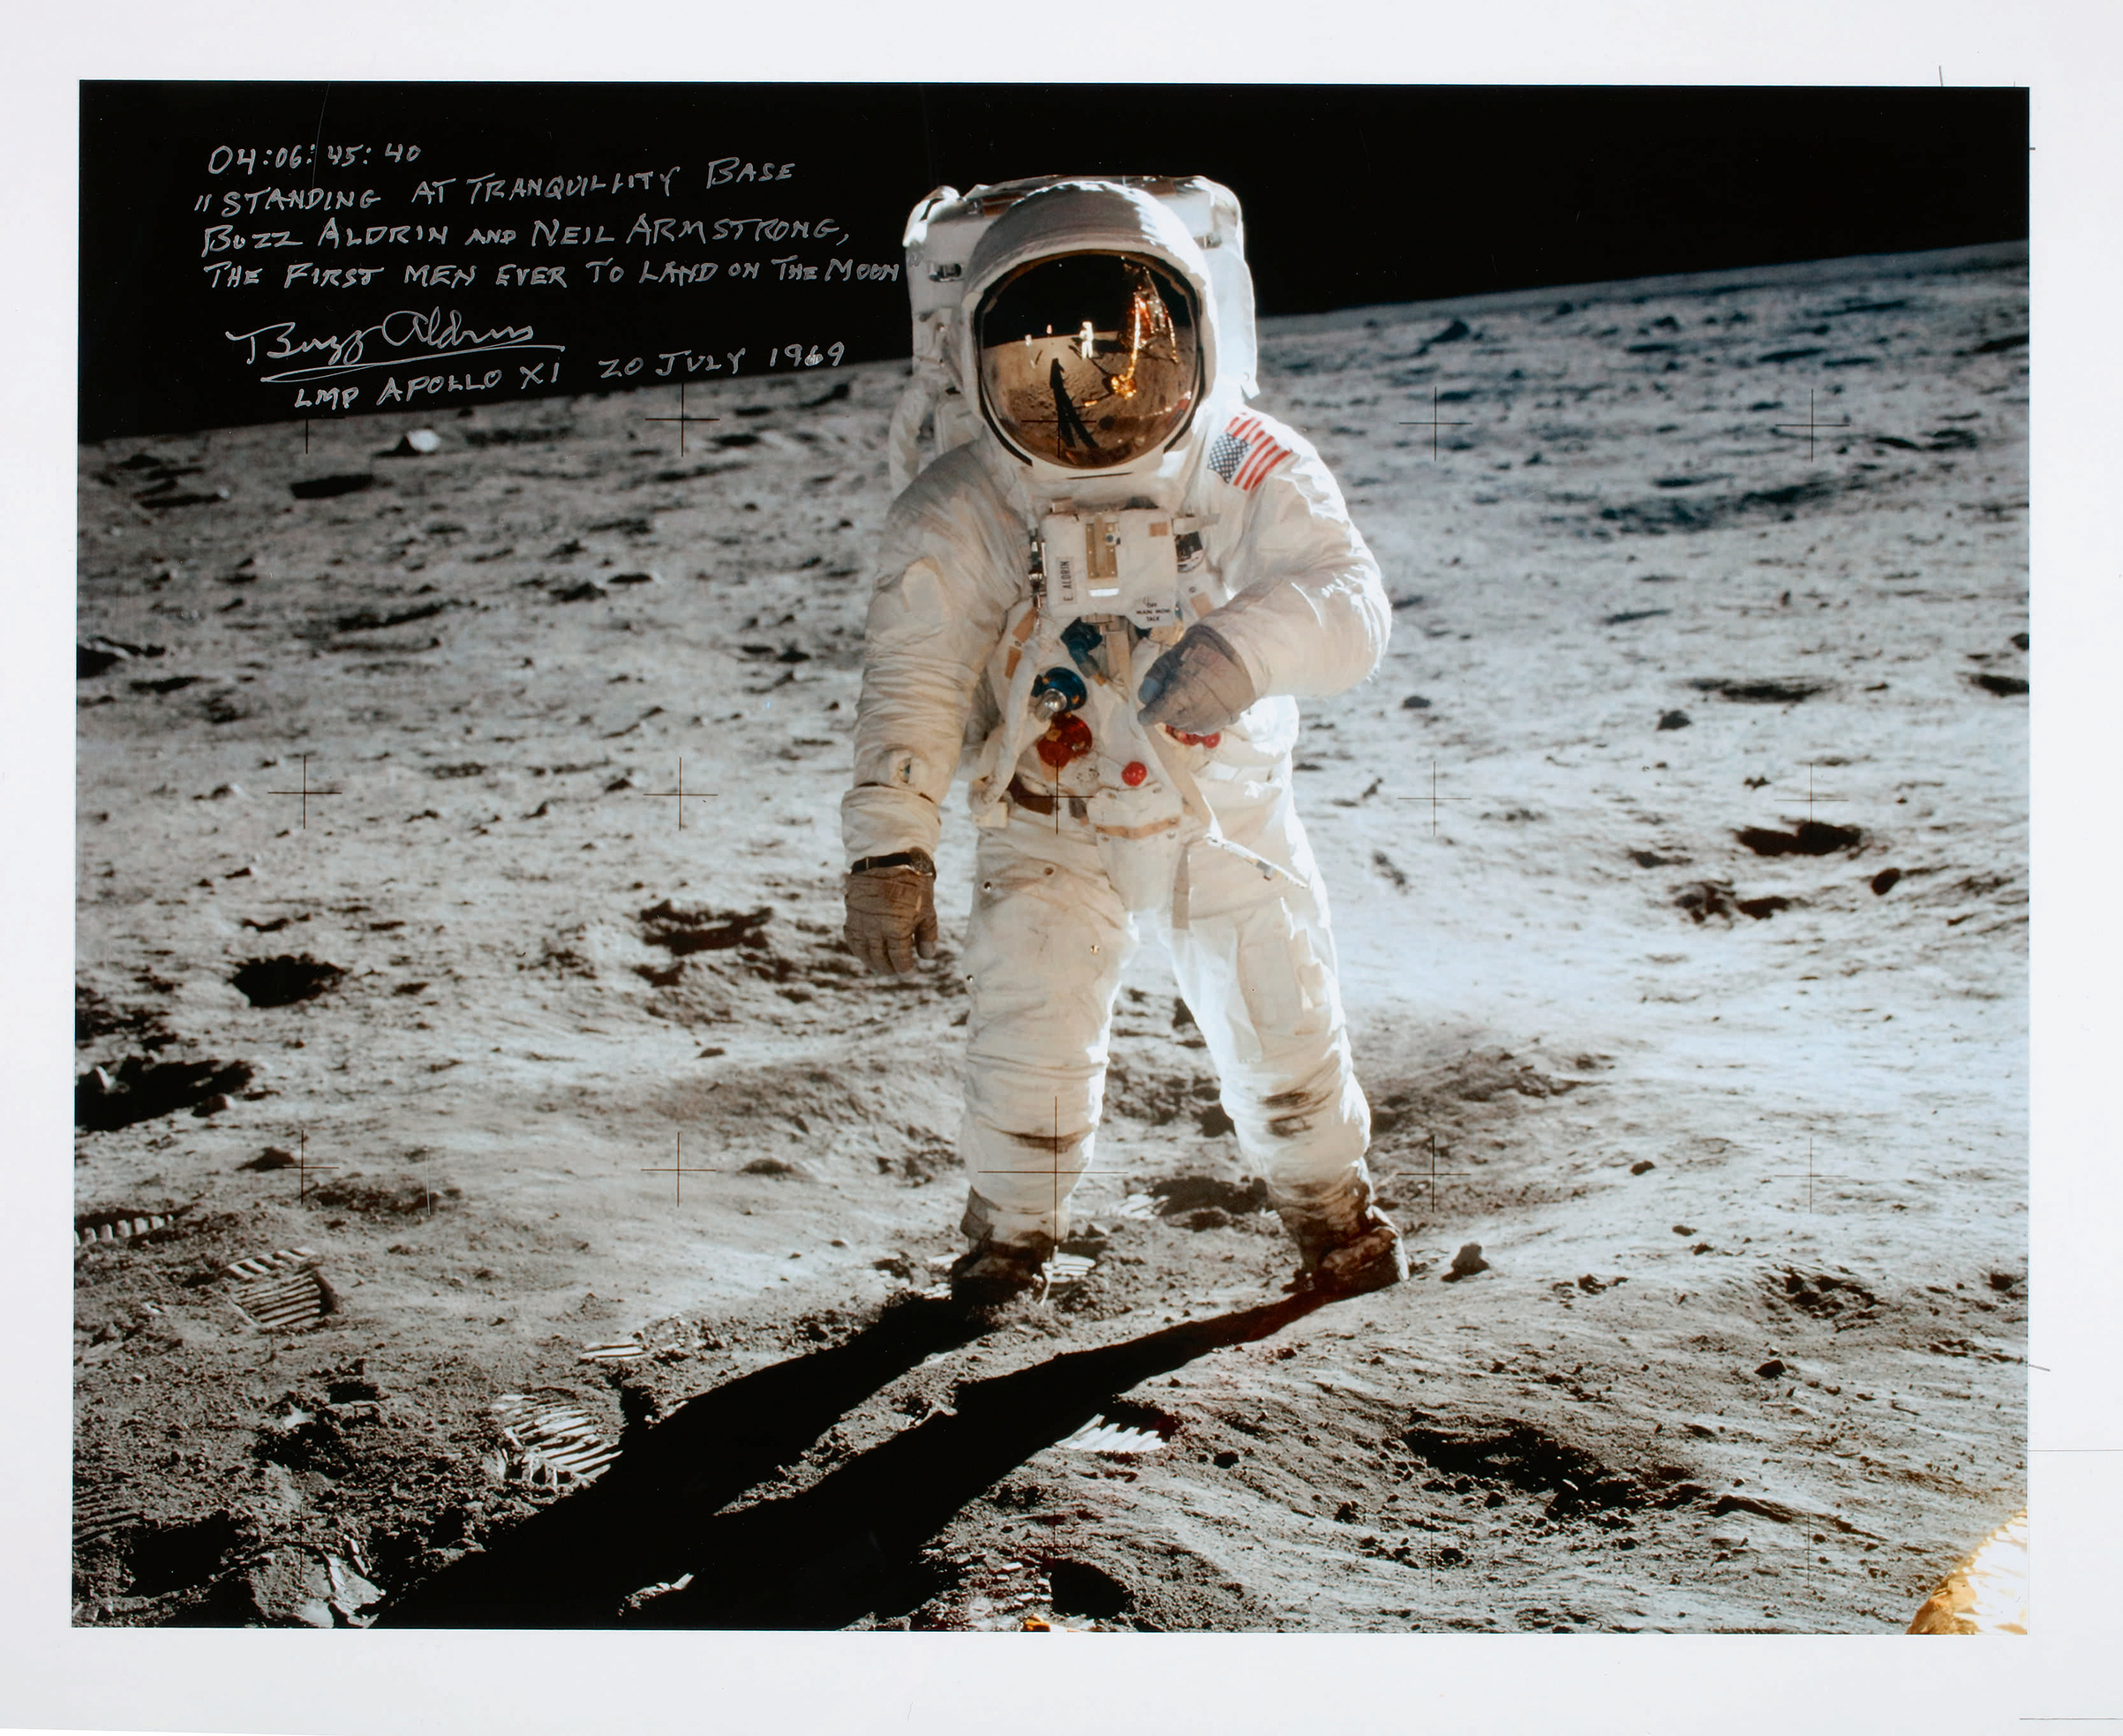 Buzz Aldrin at Tranquility Base. The Apollo program's most iconic image. Large color photograph taken by Neil Armstrong of Buzz Aldrin during their Apollo 11 moonwalk. Signed & inscribed by Buzz Aldrin.